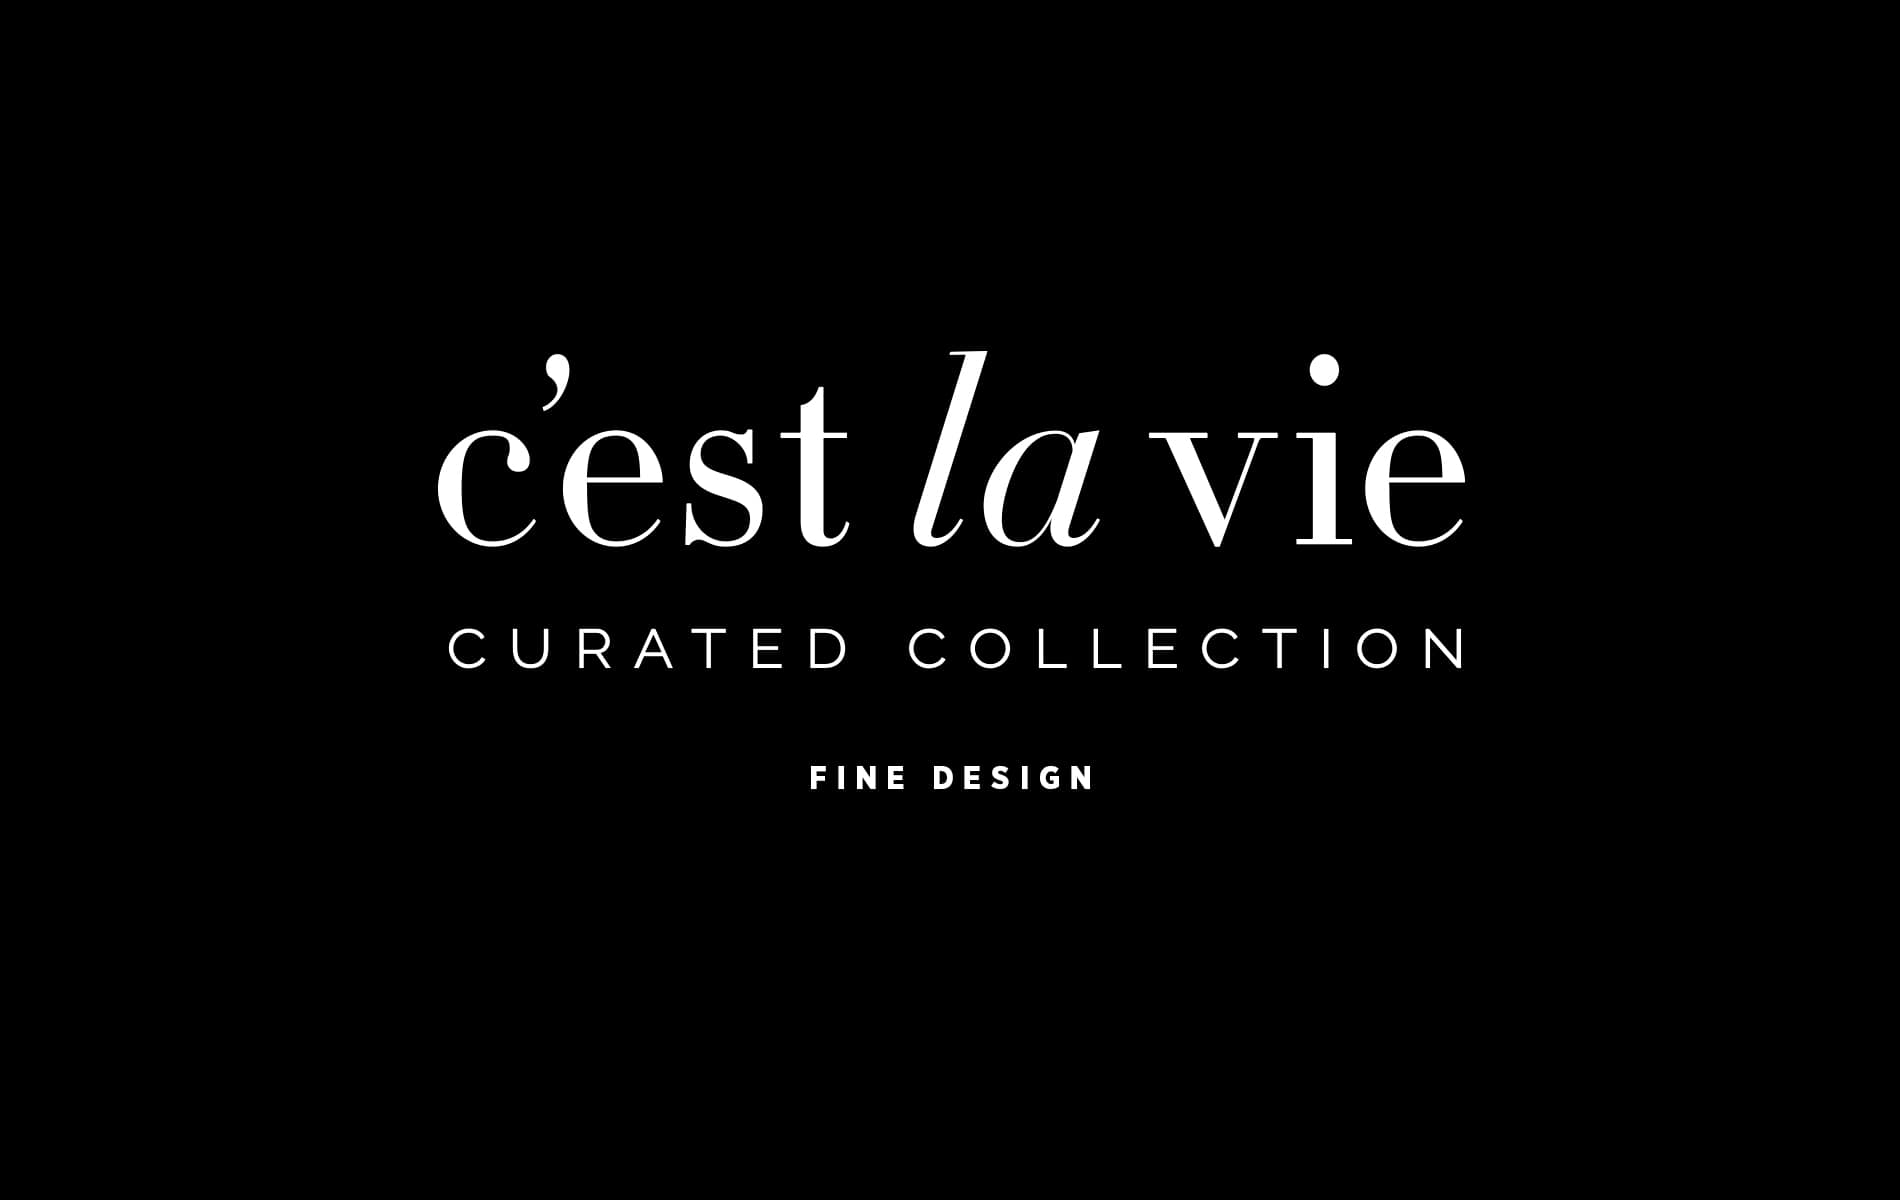 VIE Magazine C'est la VIE A Curated Collection Fine Desgin, Architecture & Design issue August 2019